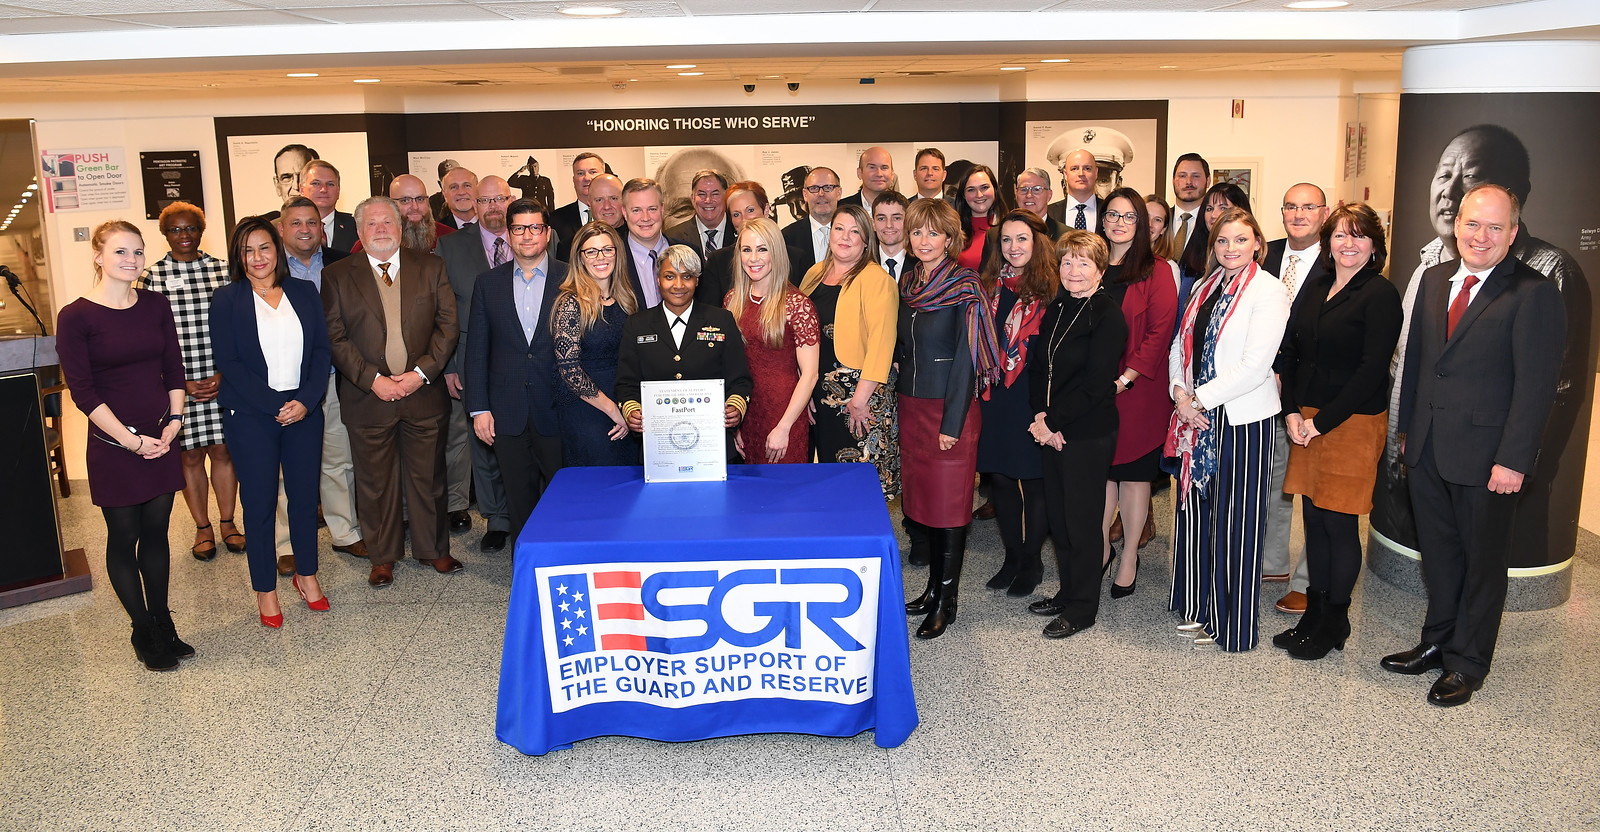 2018 Employer Support of the Guard and Reserve (ESGR) Signing Ceremony